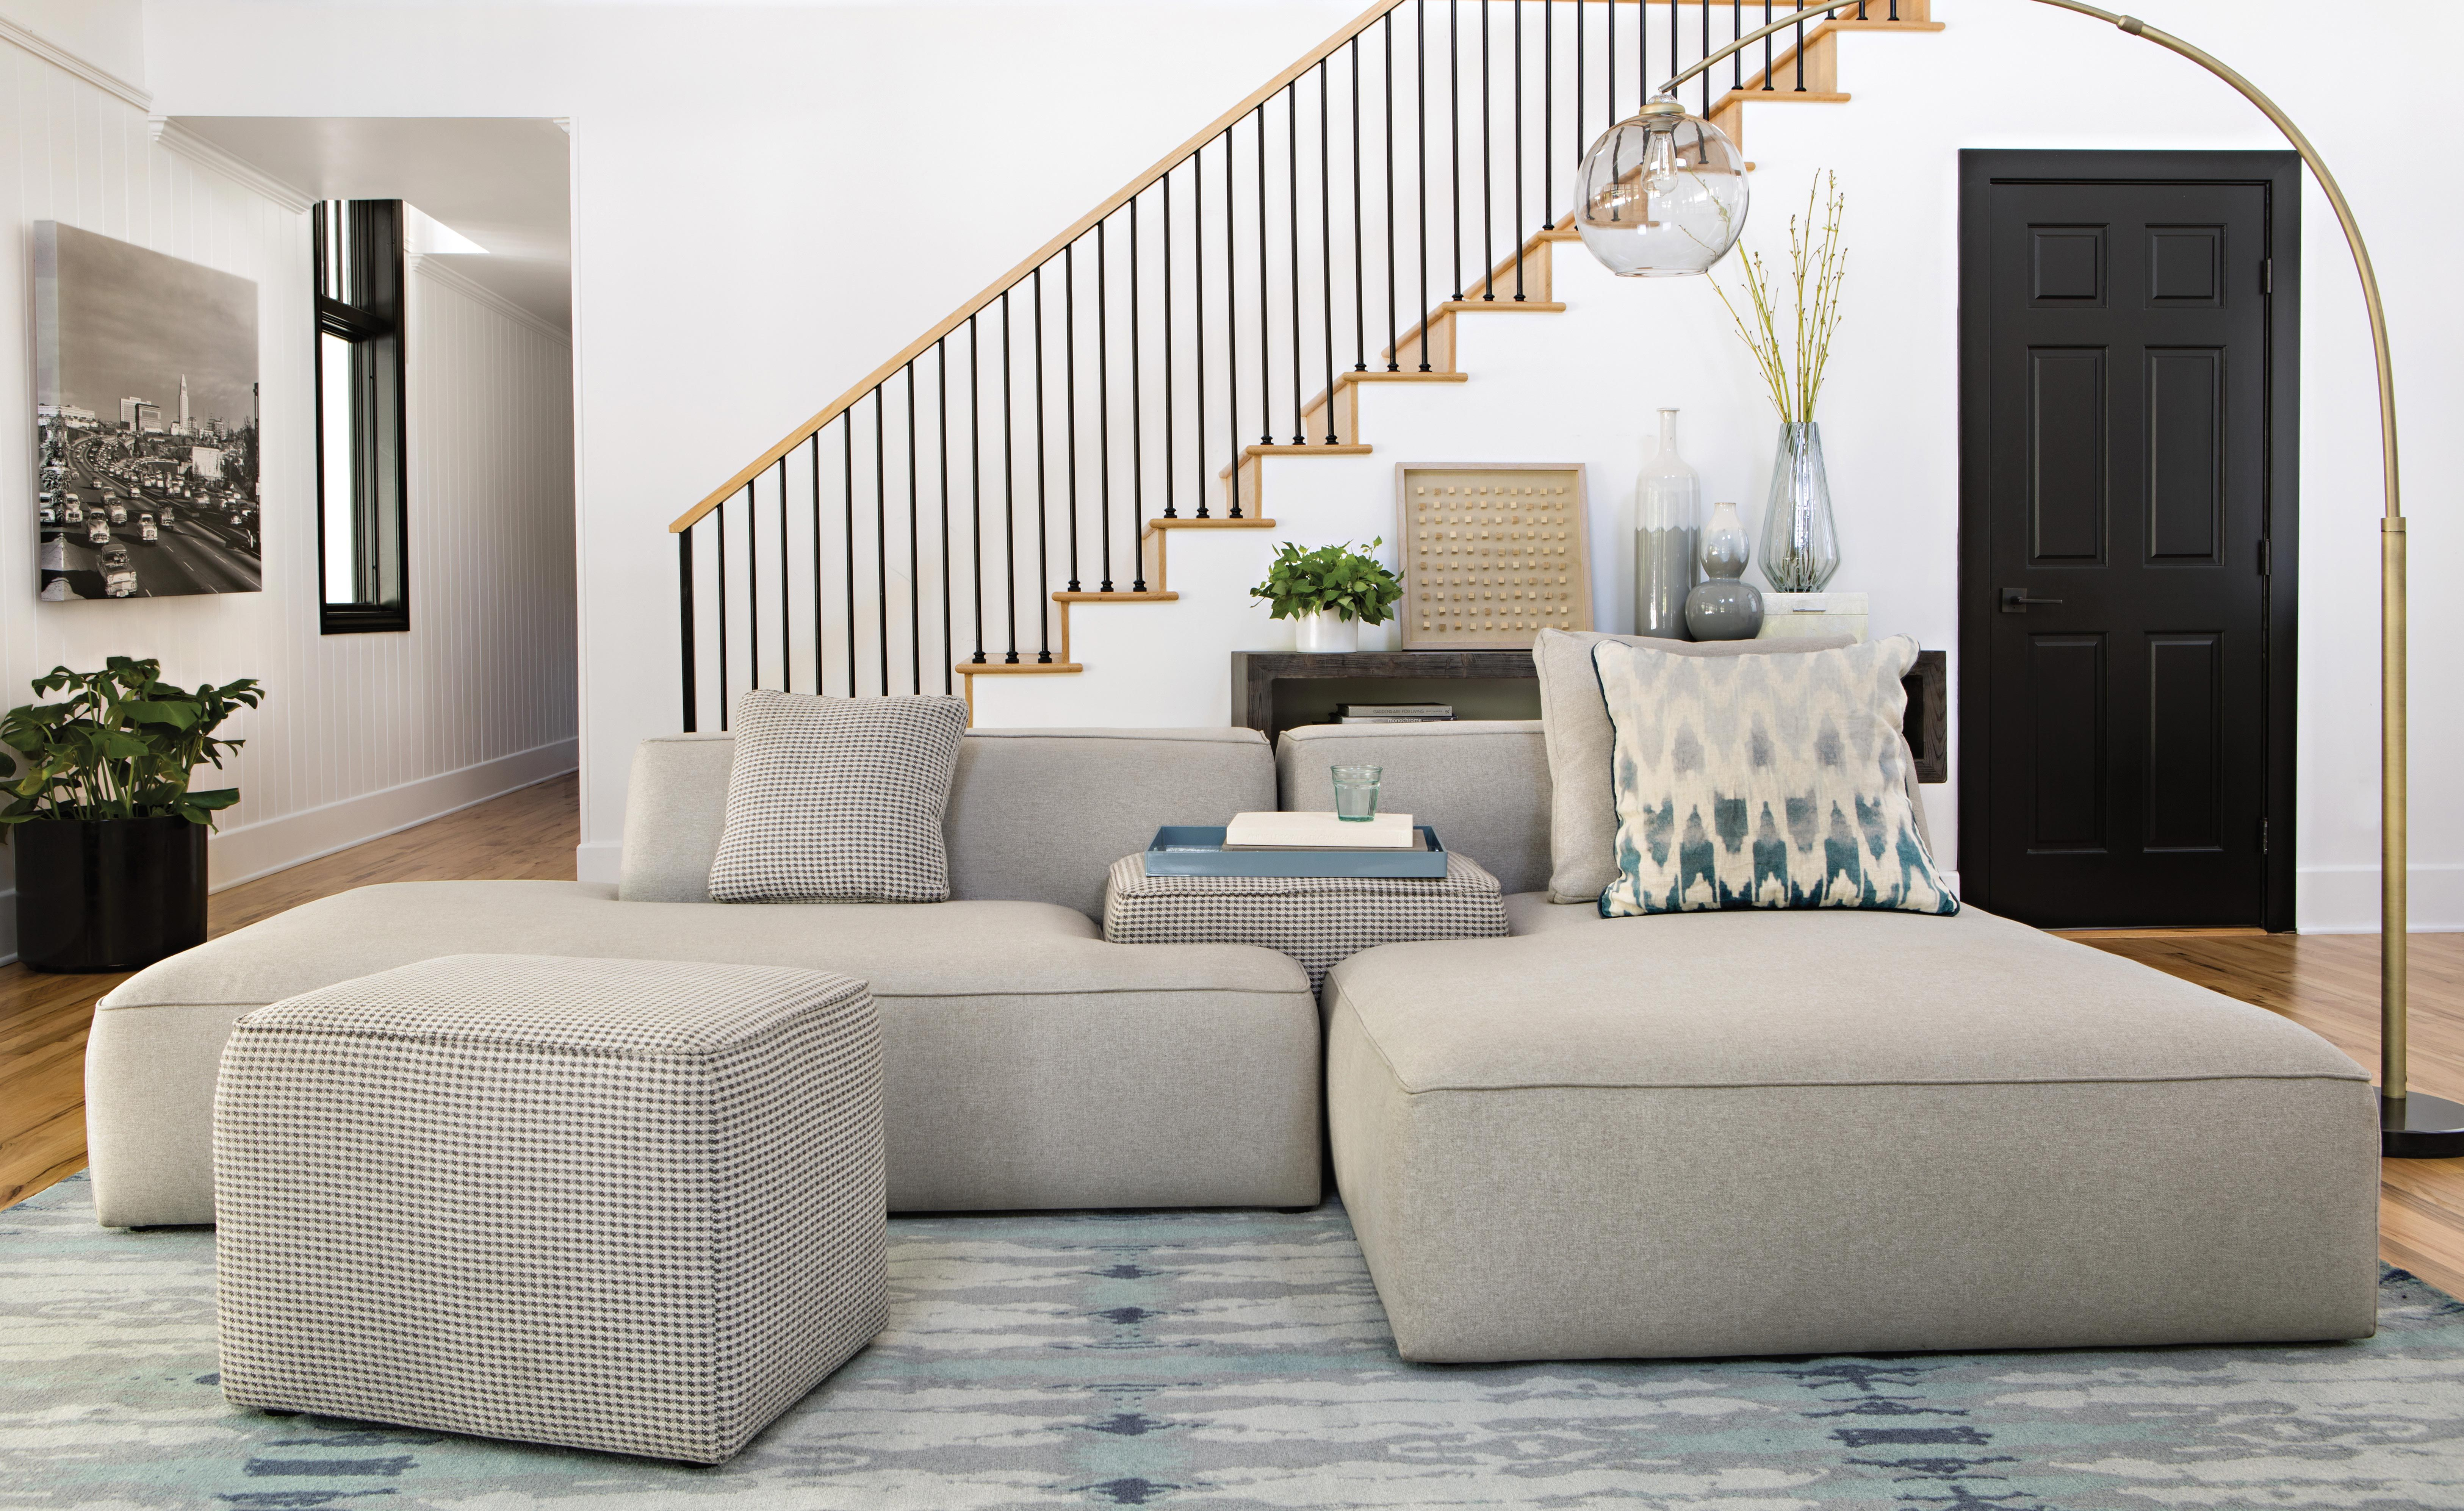 Anything But Basic Livingspaces Click Through For Details Living Room Sofa Design Living Room Stools Sofa Design